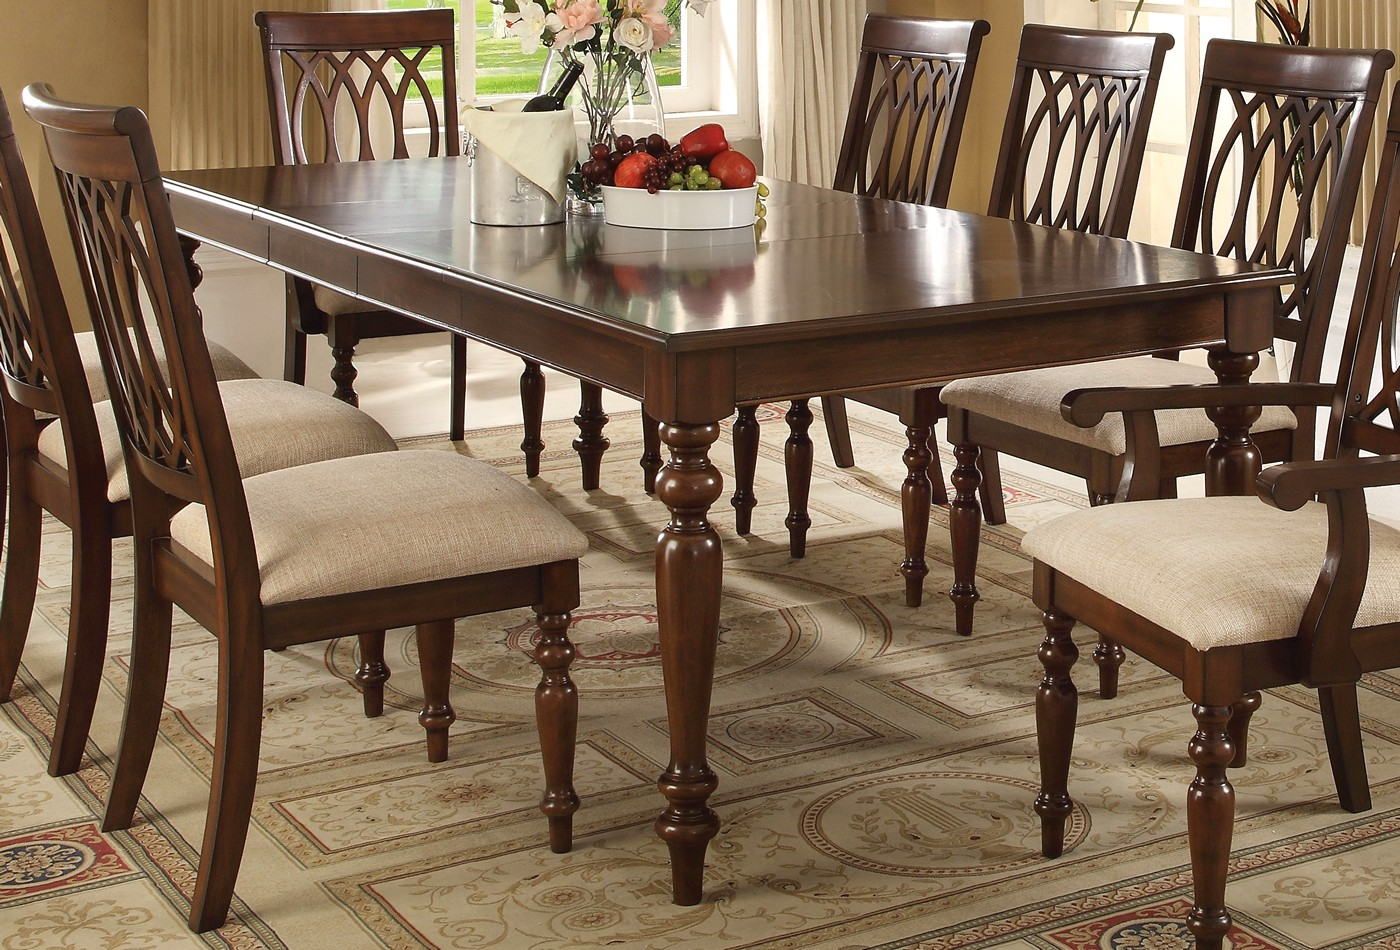 Faolan formal 59 95 wooden top dining table in walnut finish for Formal wood dining table